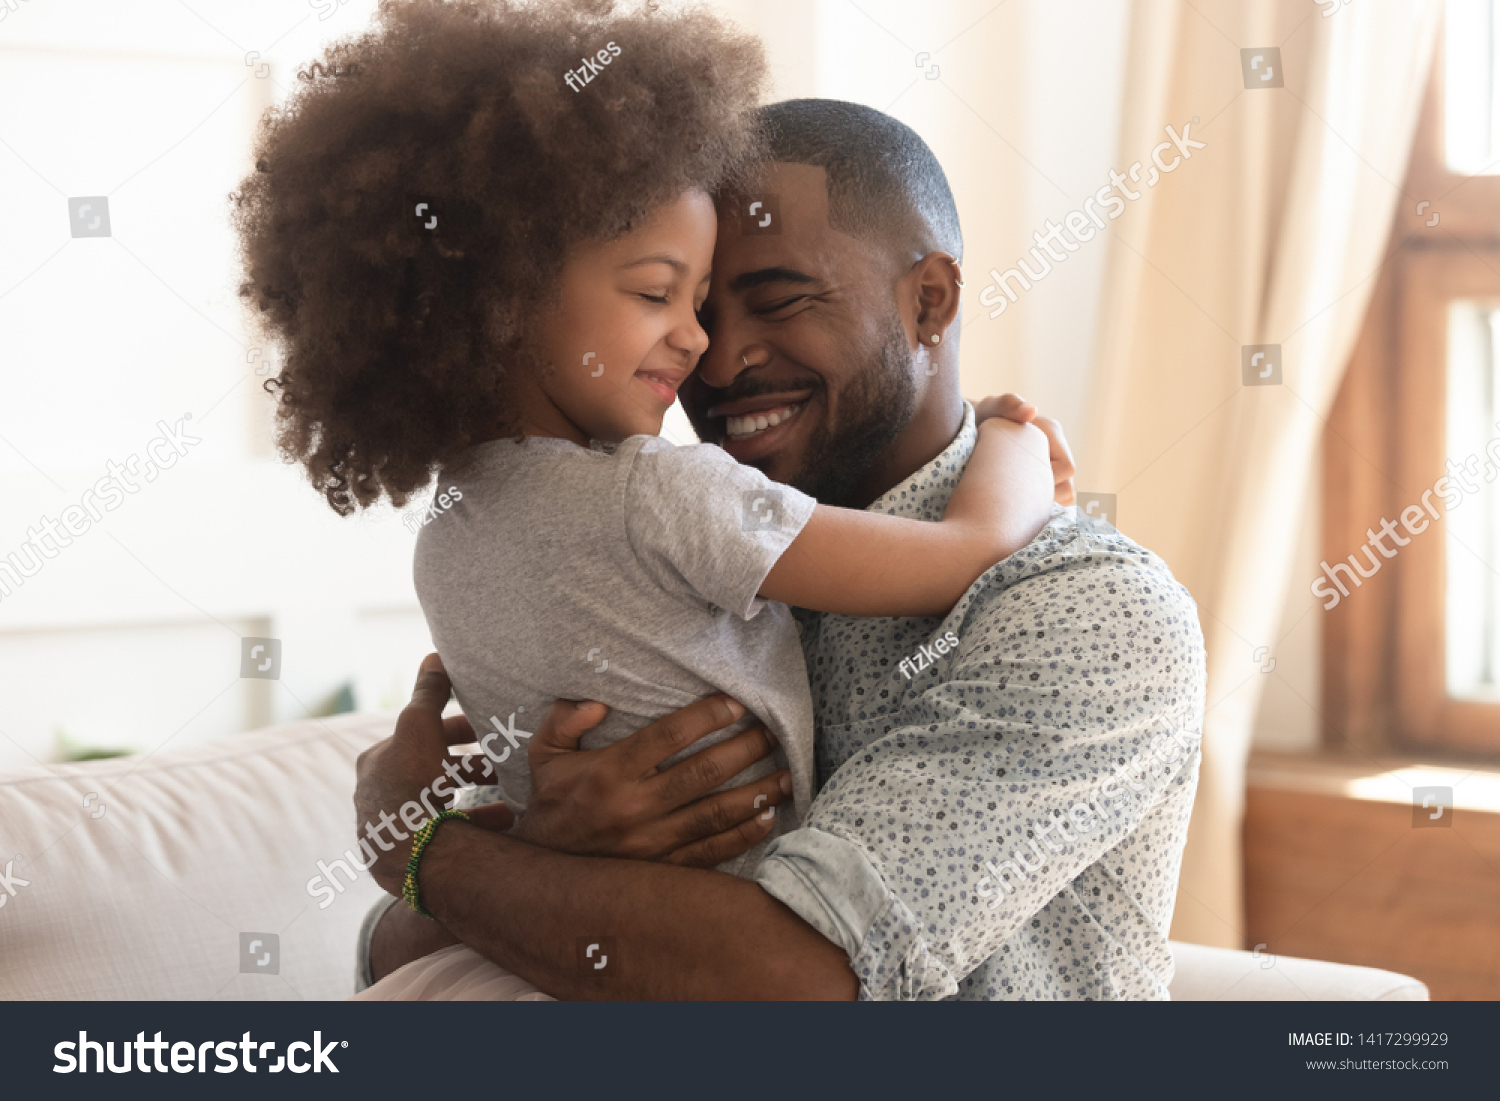 Sweet moments of fatherhood concept, happy african father hold embrace cute little child daughter, smiling black family mixed race daddy and small kid hugging cuddling enjoying time together at home #1417299929